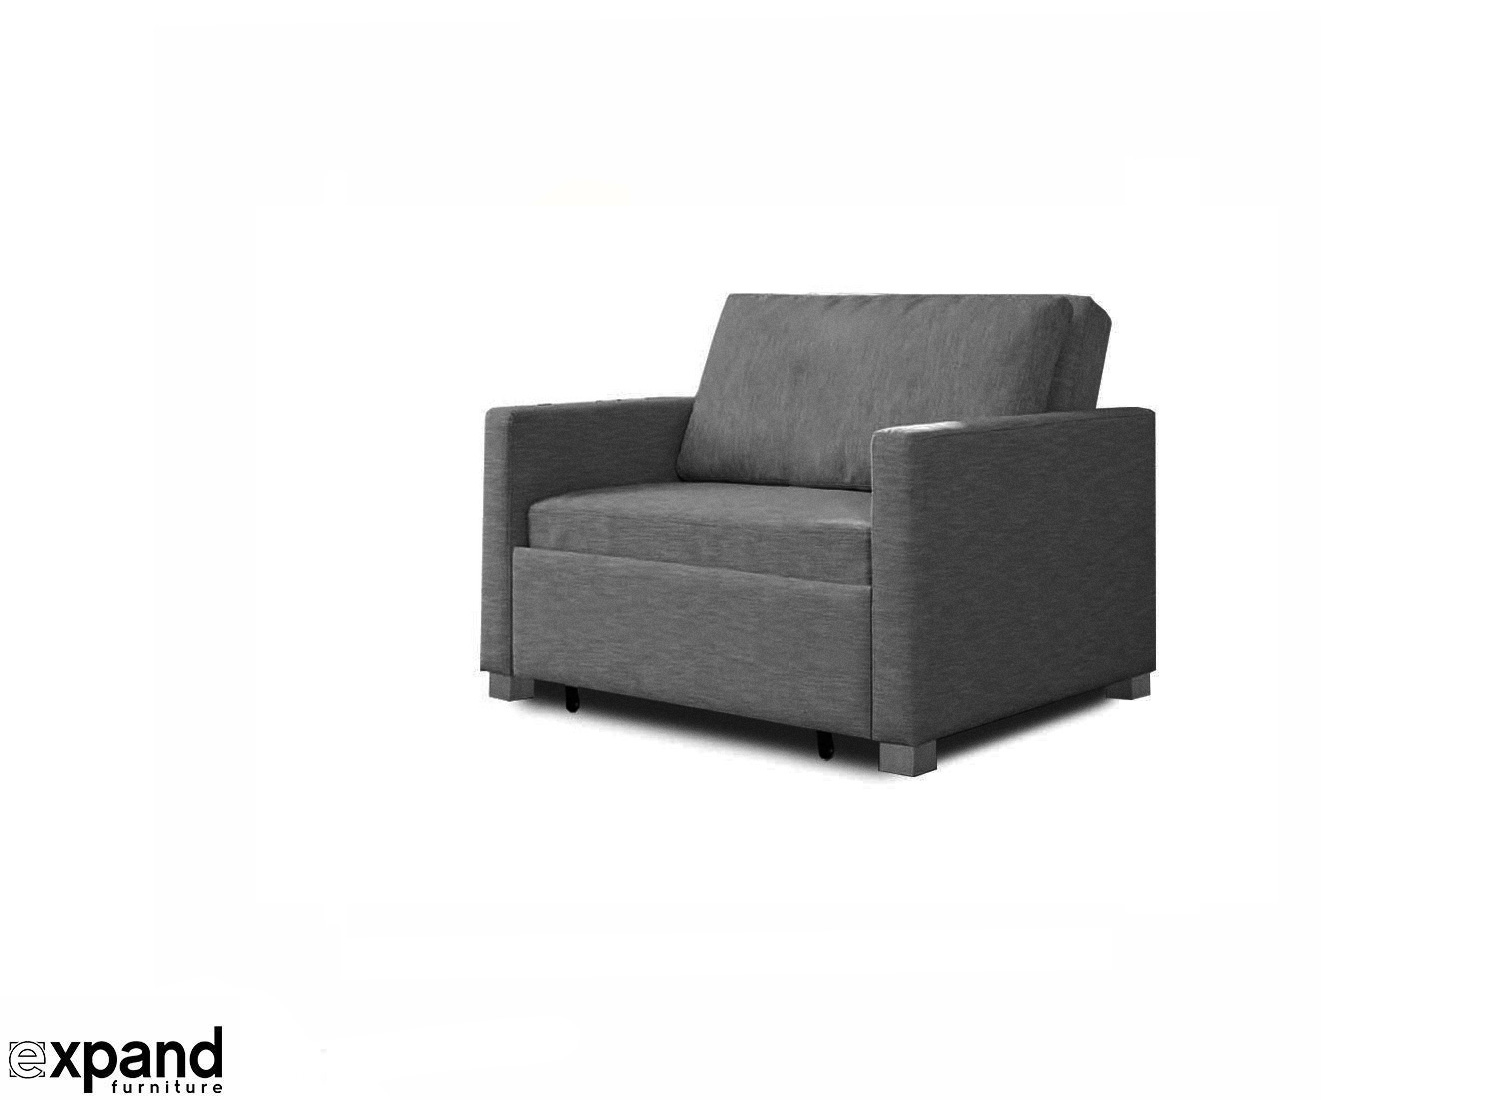 Single twin sofa bed with ottoman. prev